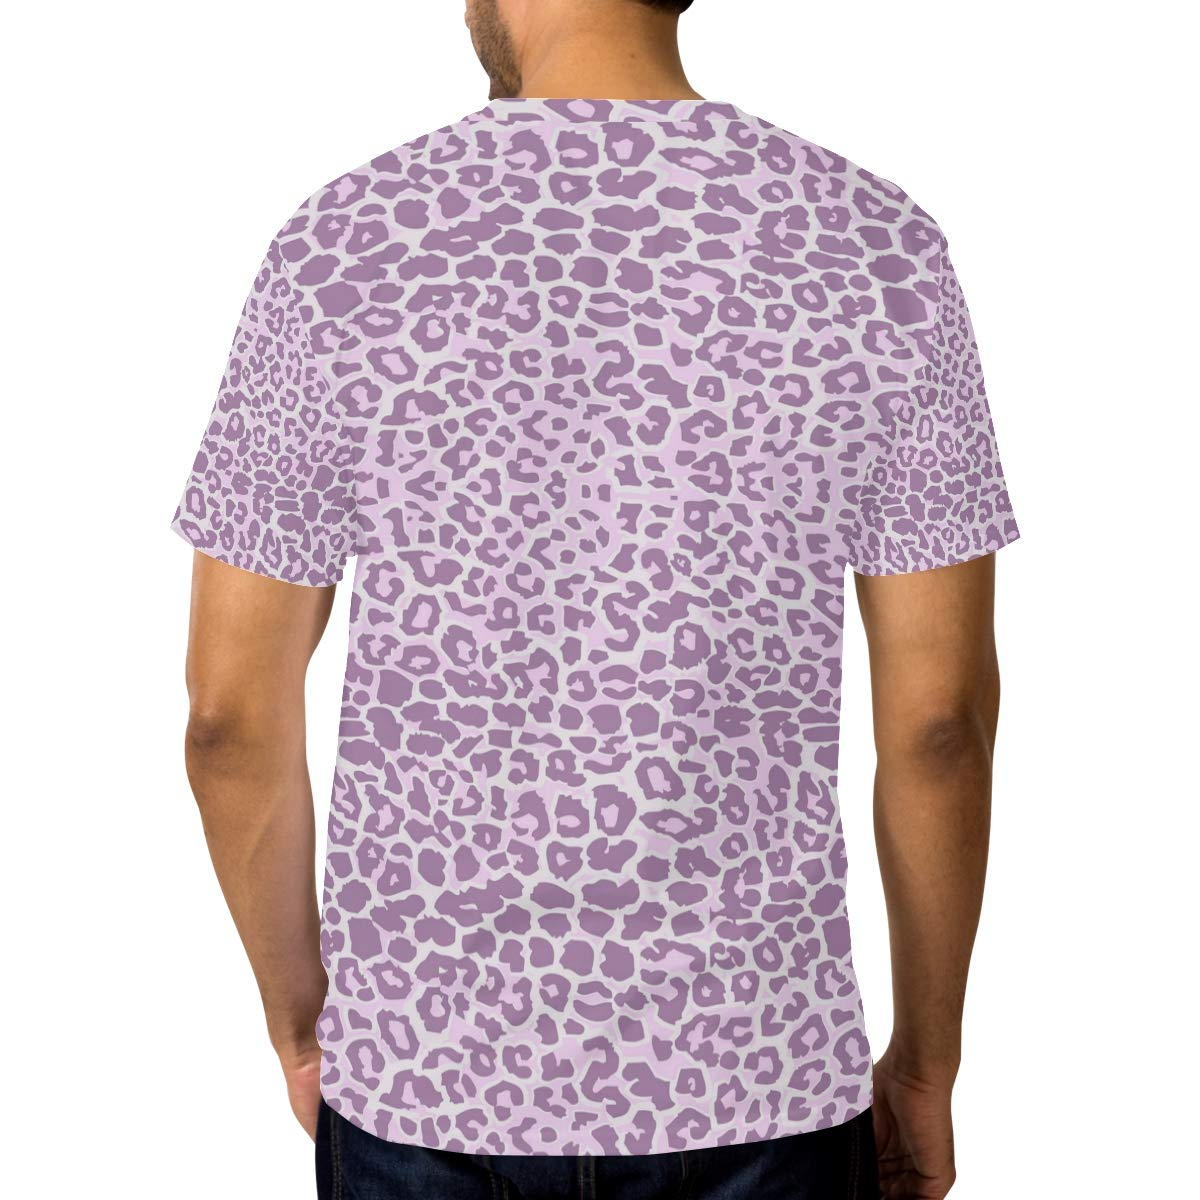 Horatiood Huberyyd Rurple Leopard Print Mens T Shirts Graphic Funny Body Print Short T-Shirt Unisex Pullover Blouse